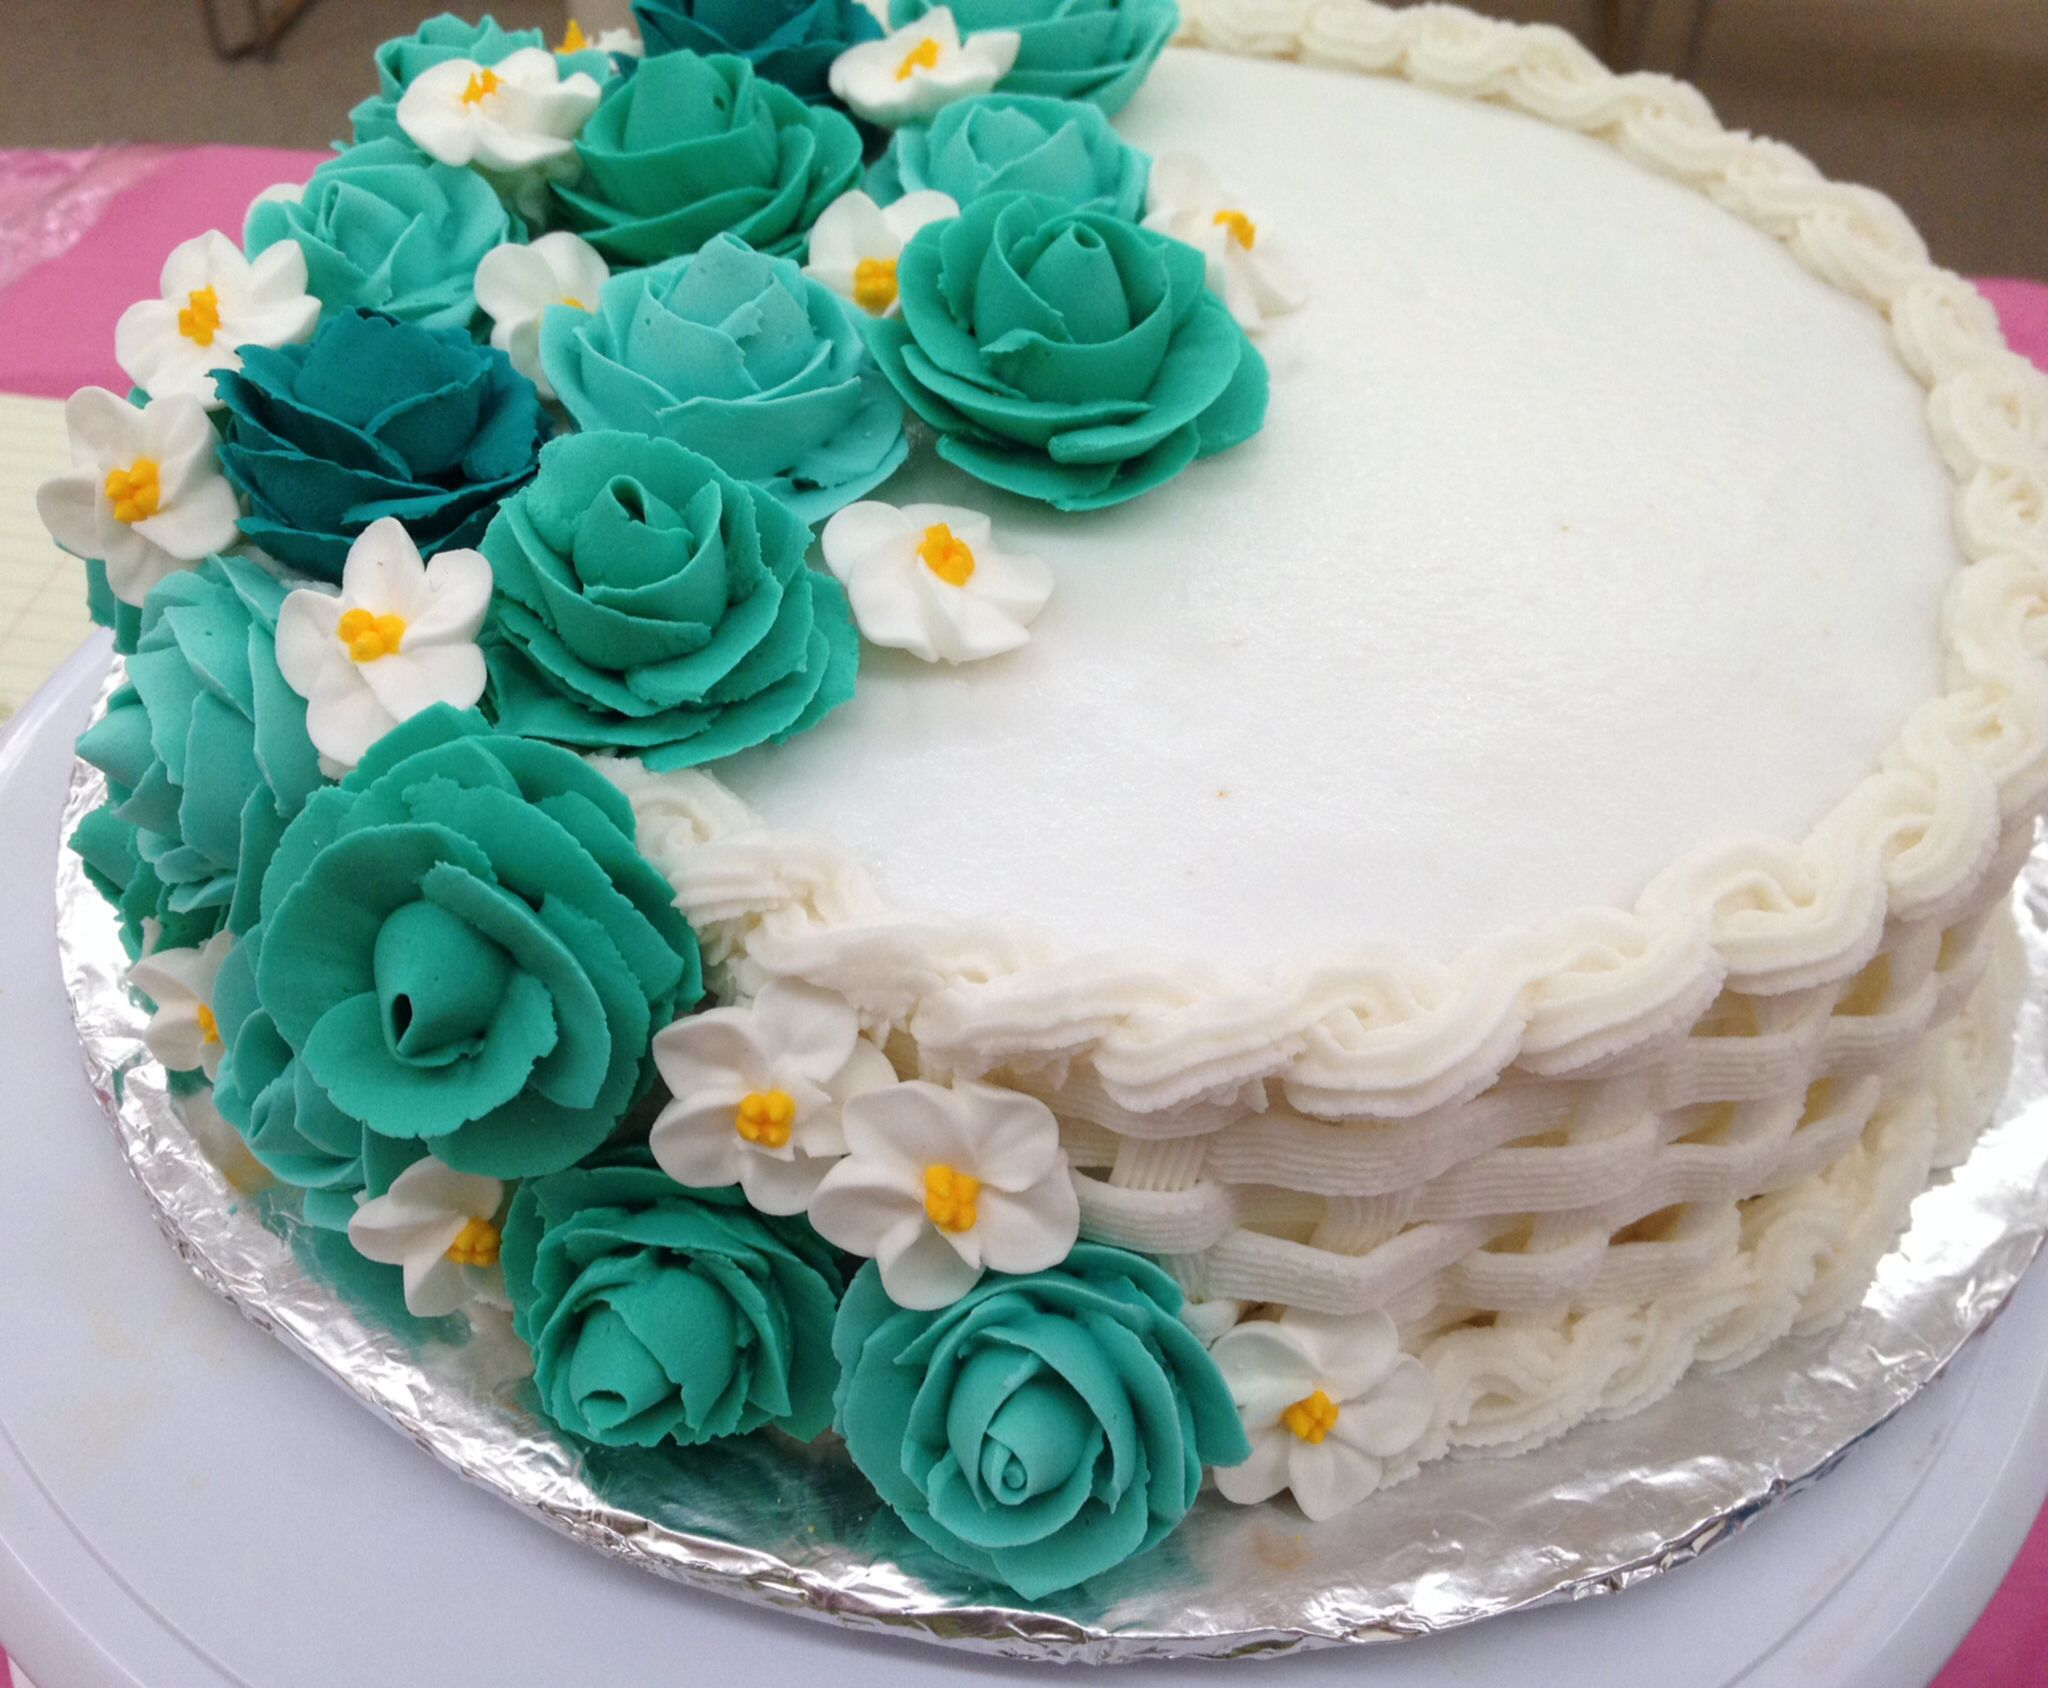 Cake Decorating Icing For Flowers : Wilton course 2 cake completed! Lemon cake with raspberry ...